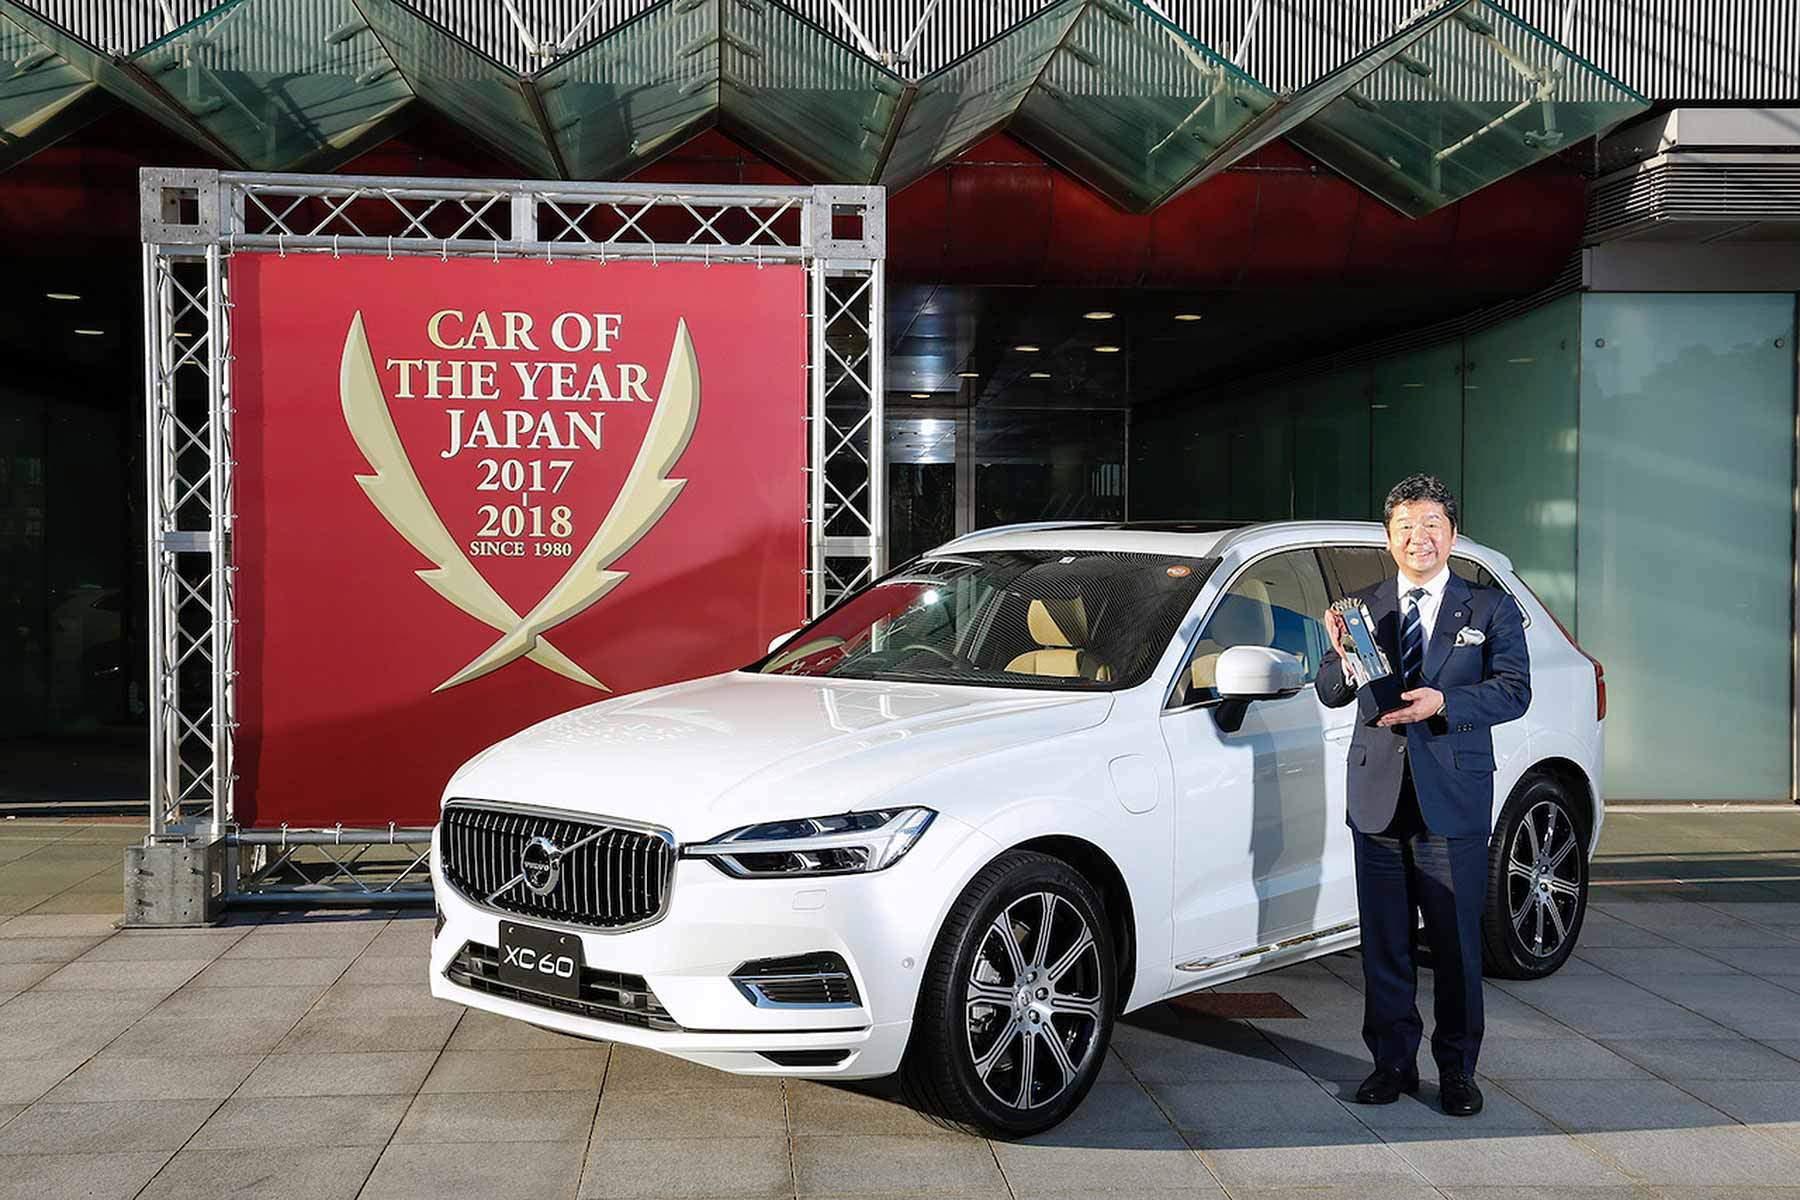 Volvo Xc60 Is An S Car Of The Year 2018